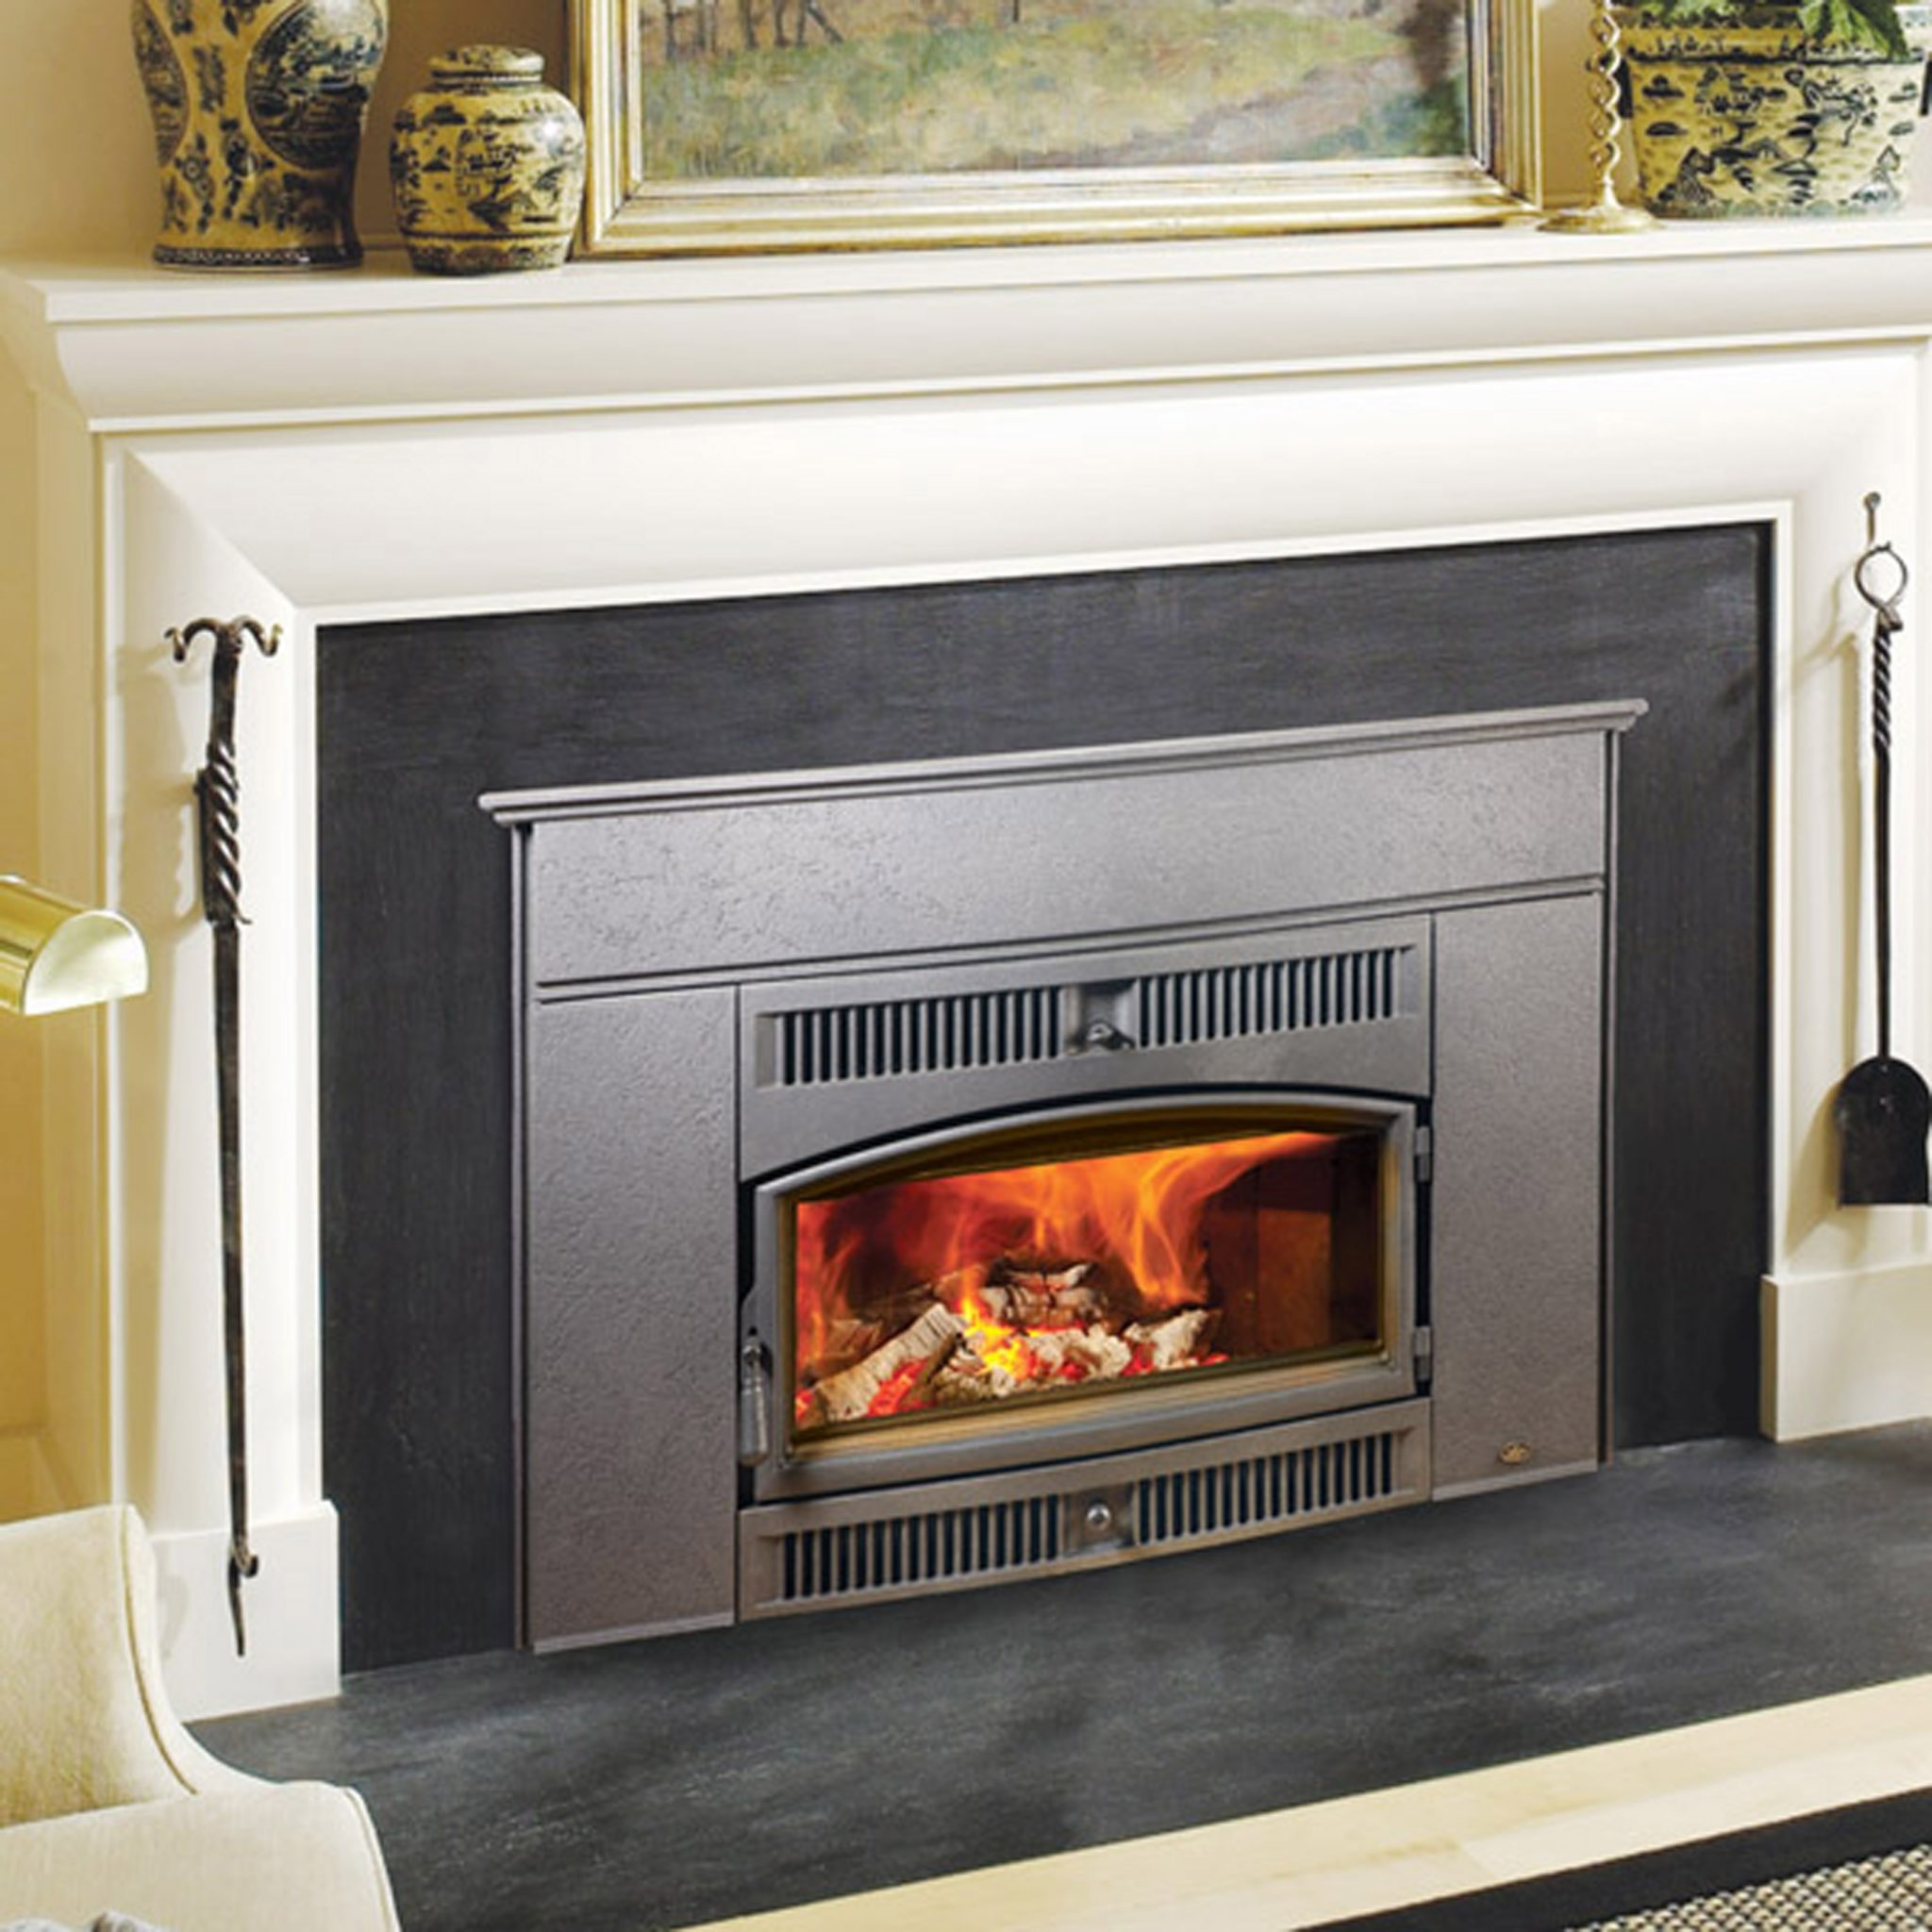 fireplace heat updated press releases with fireplaces gas heatilator installations about reality glo us unique room slimline